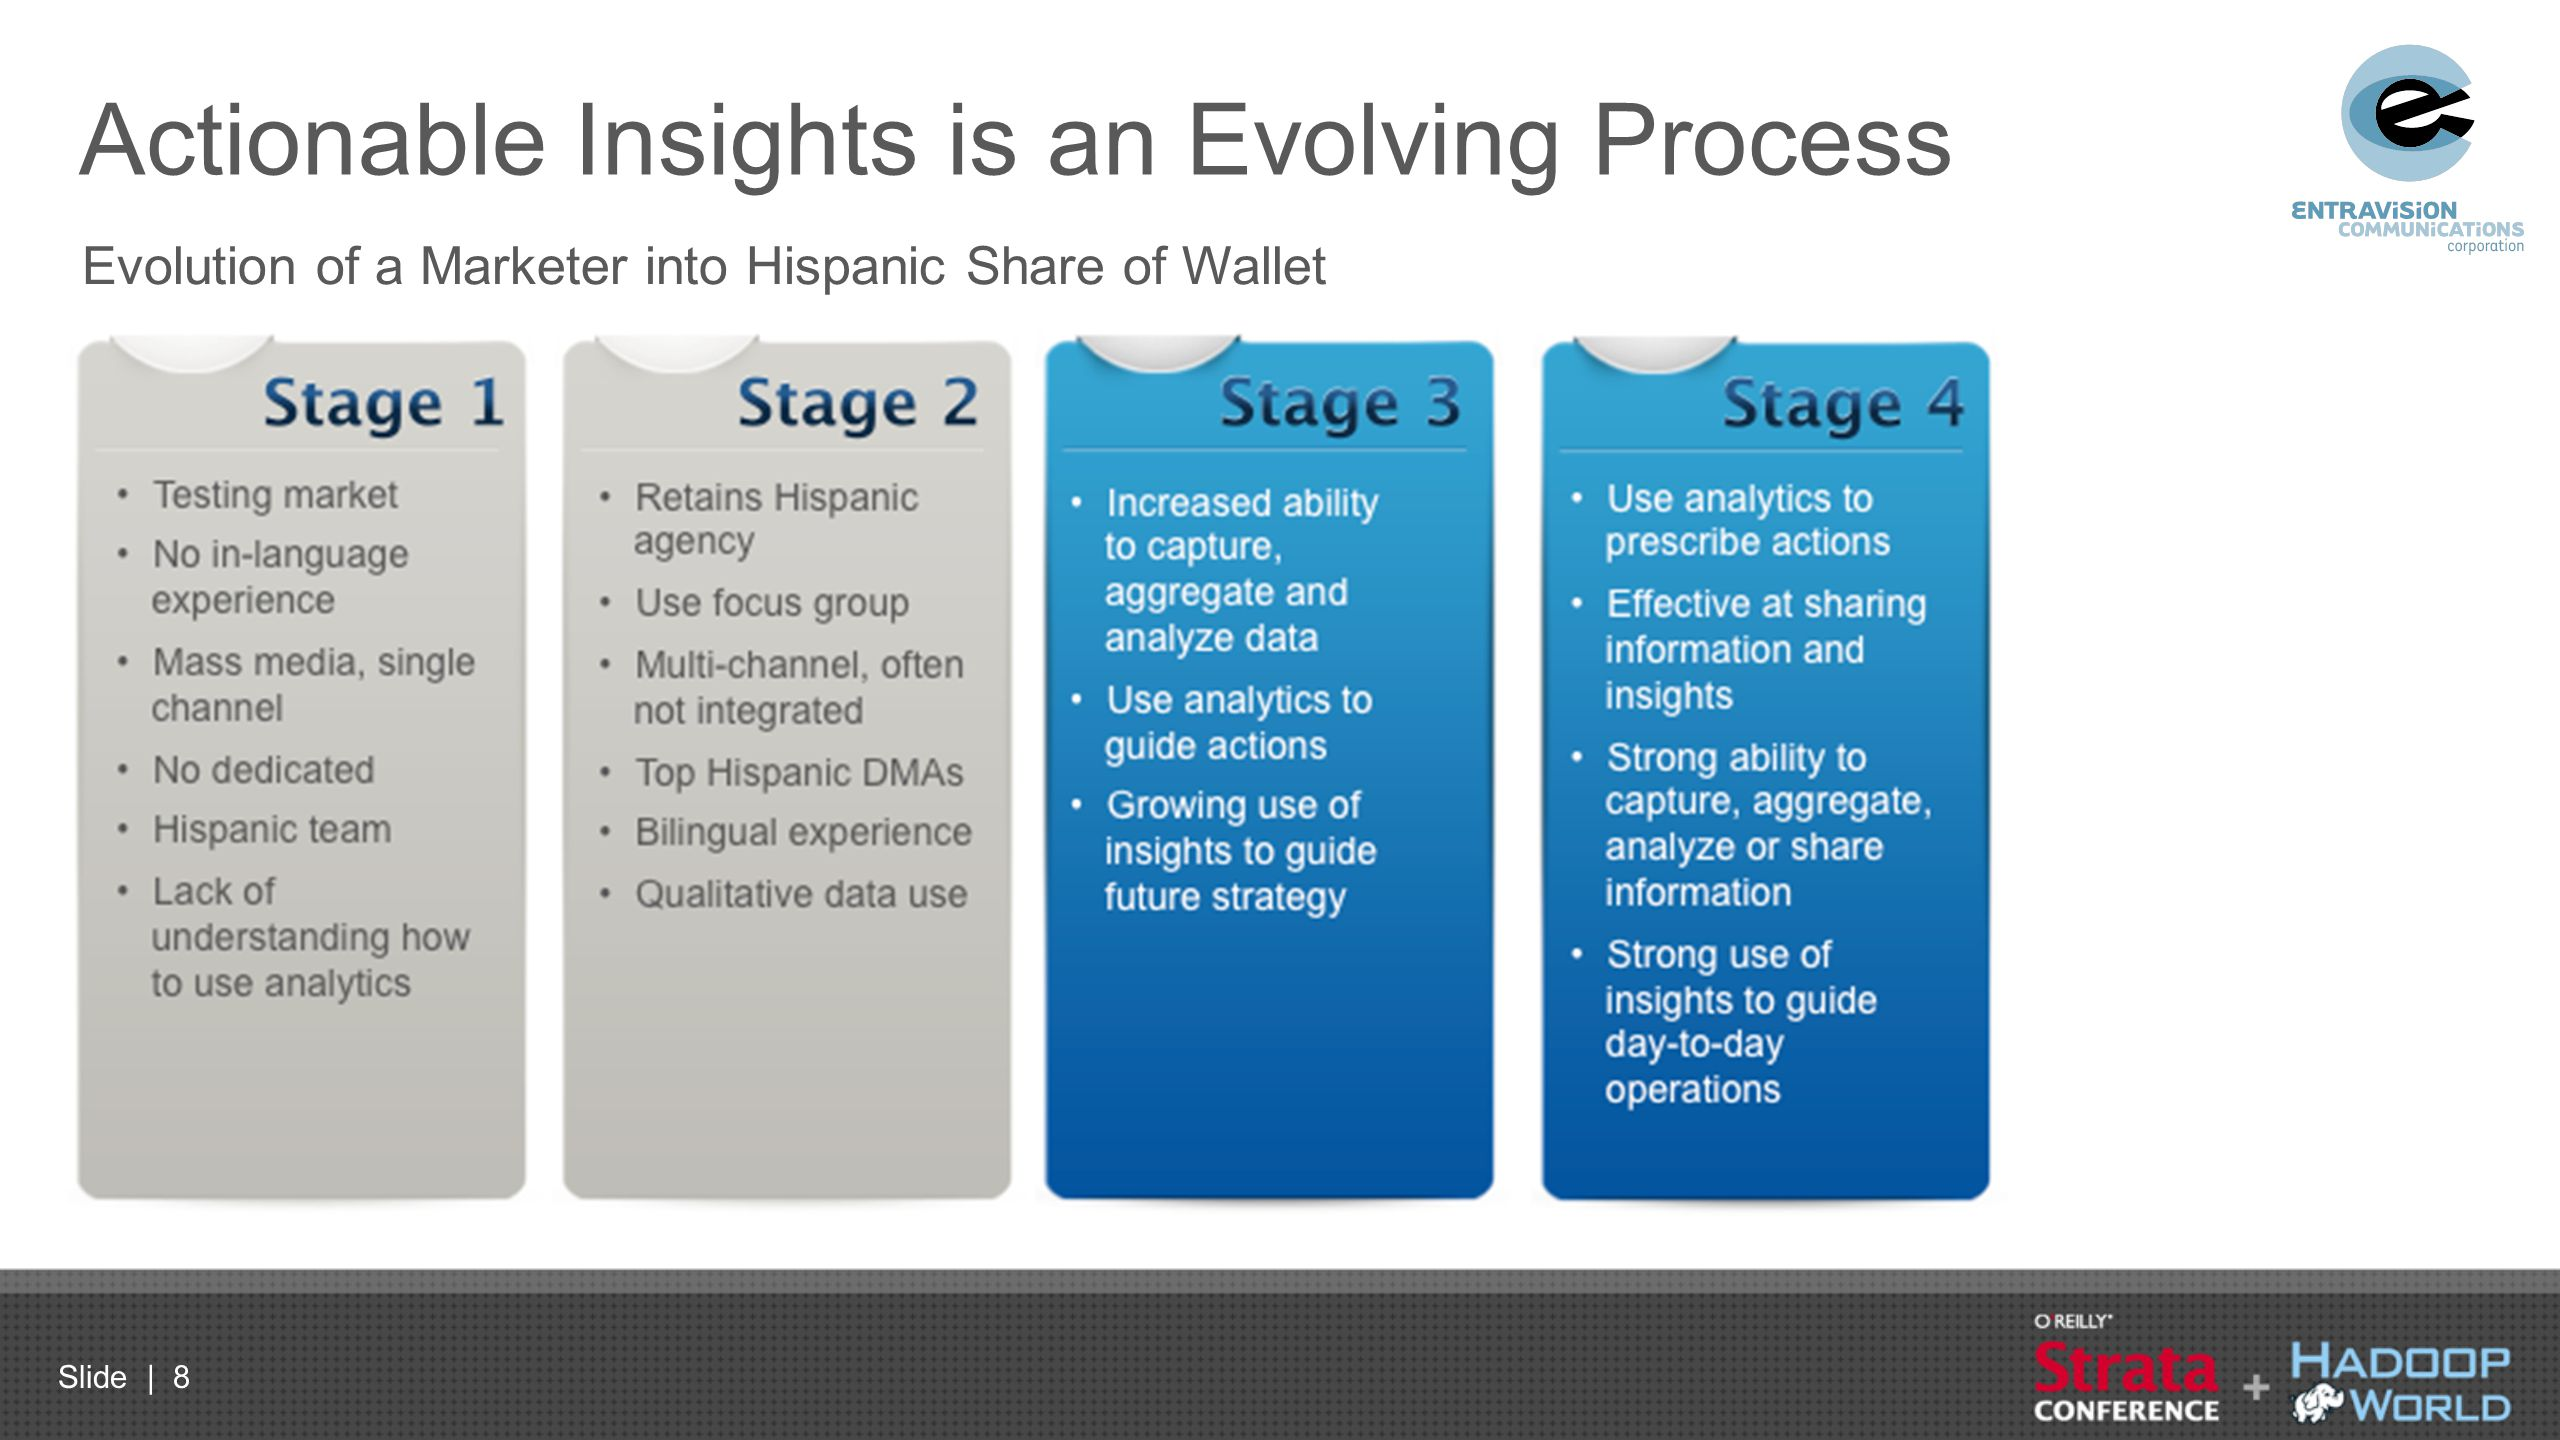 Actionable Insights is an Evolving Process